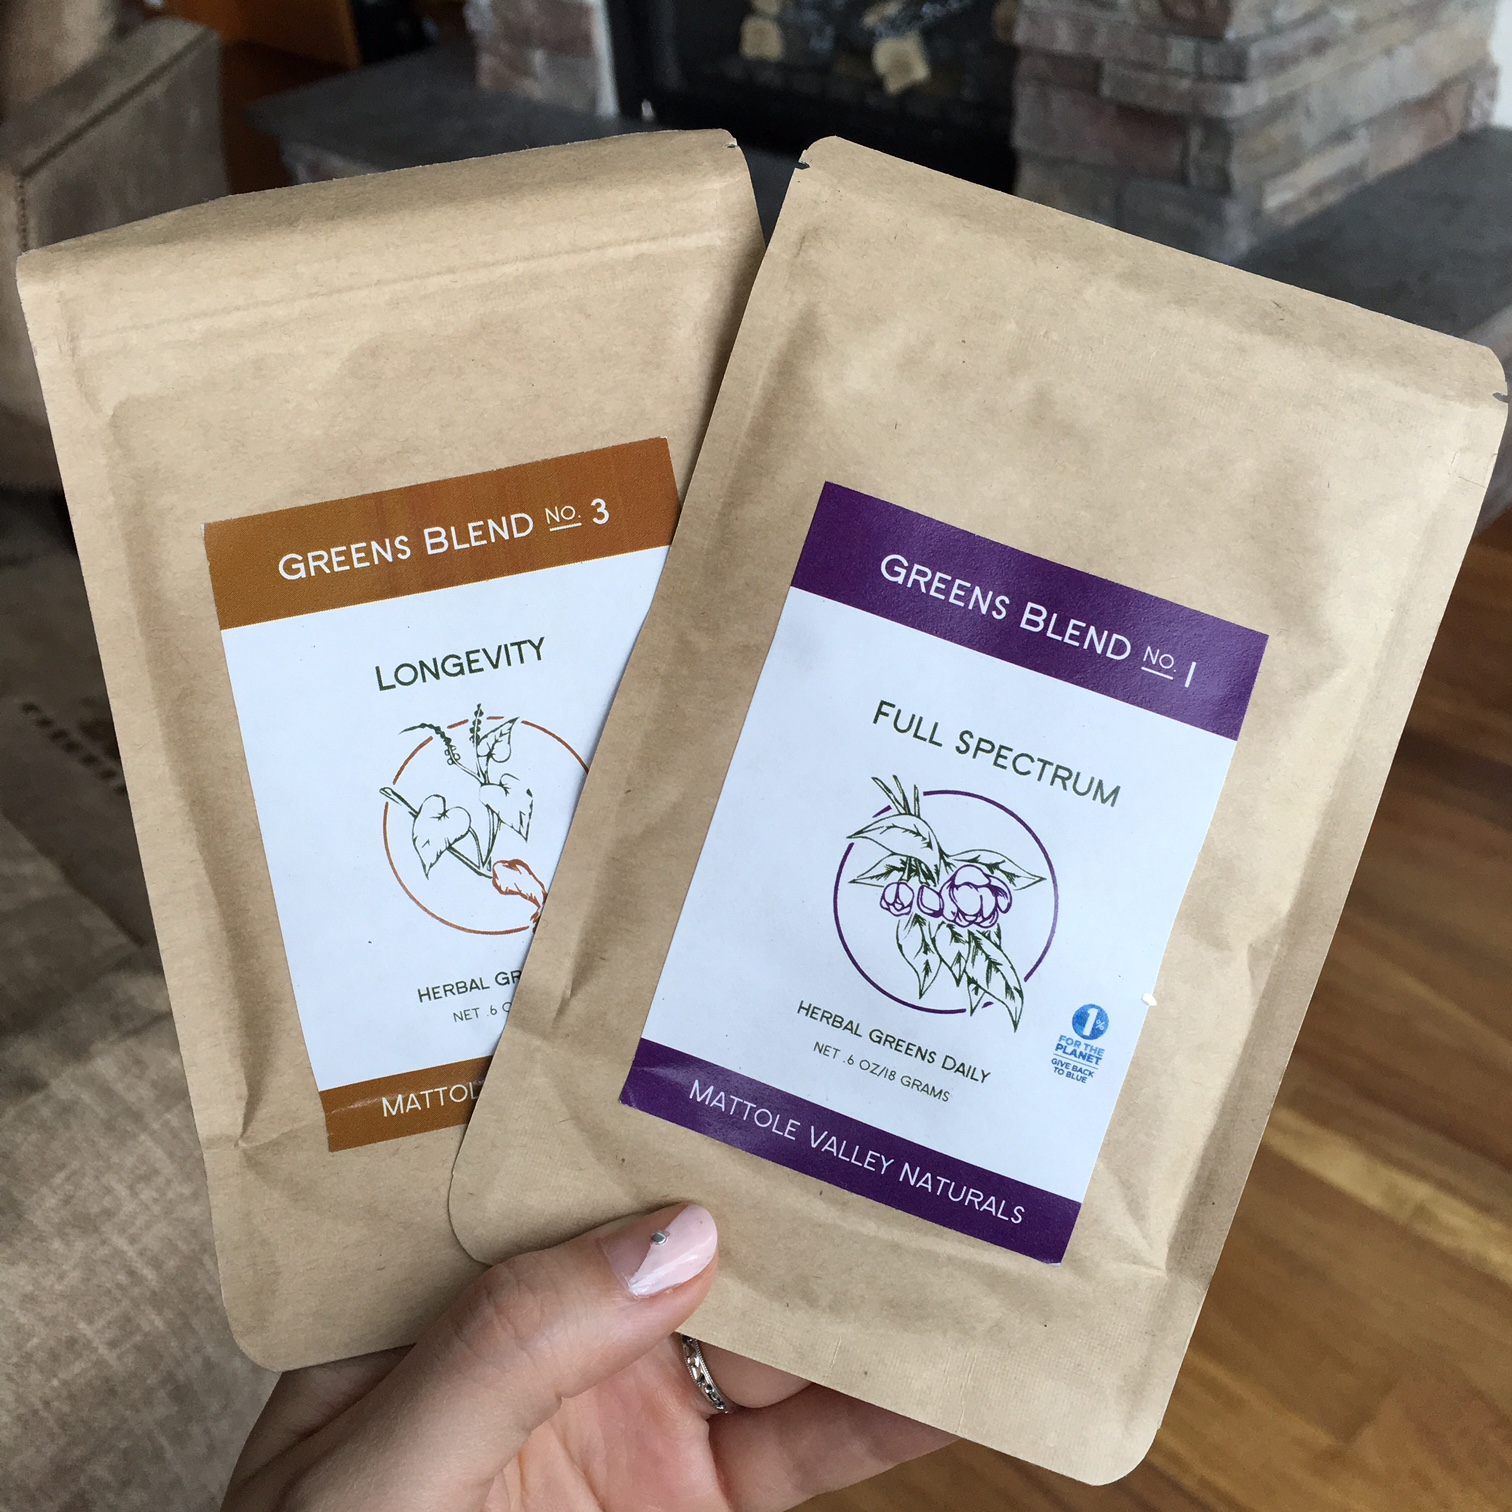 Mattole Valley Naturals detox blends